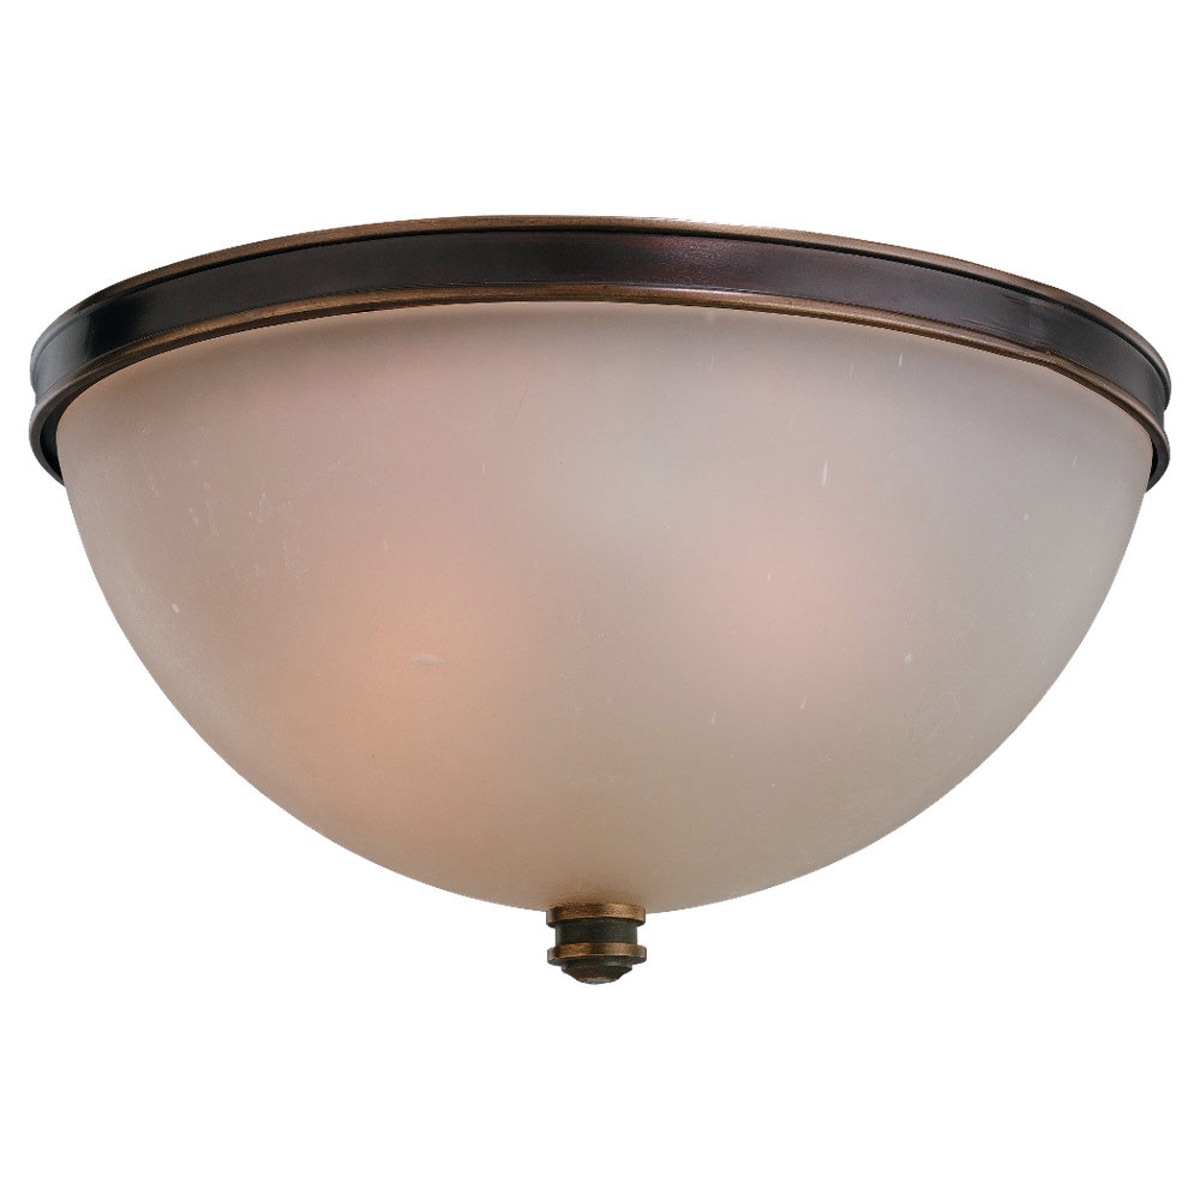 Sea Gull Lighting Warwick 3 Light Flush Mount in Vintage Bronze 75332-825 photo